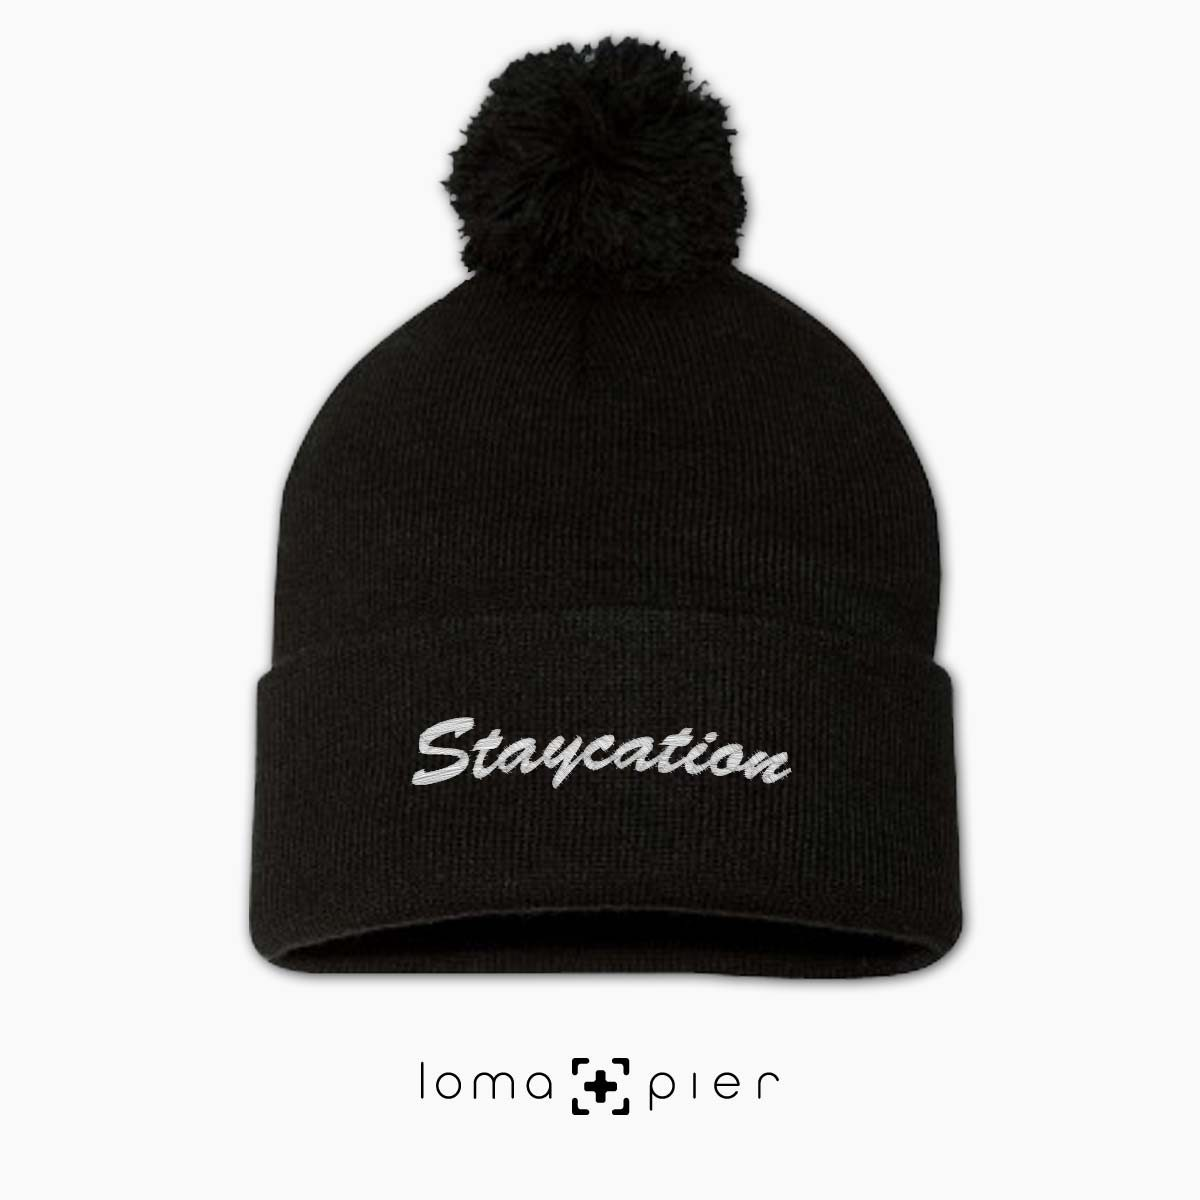 STAYCATION chill saying embroidered on a black pom pom beanie by loma+pier hat store